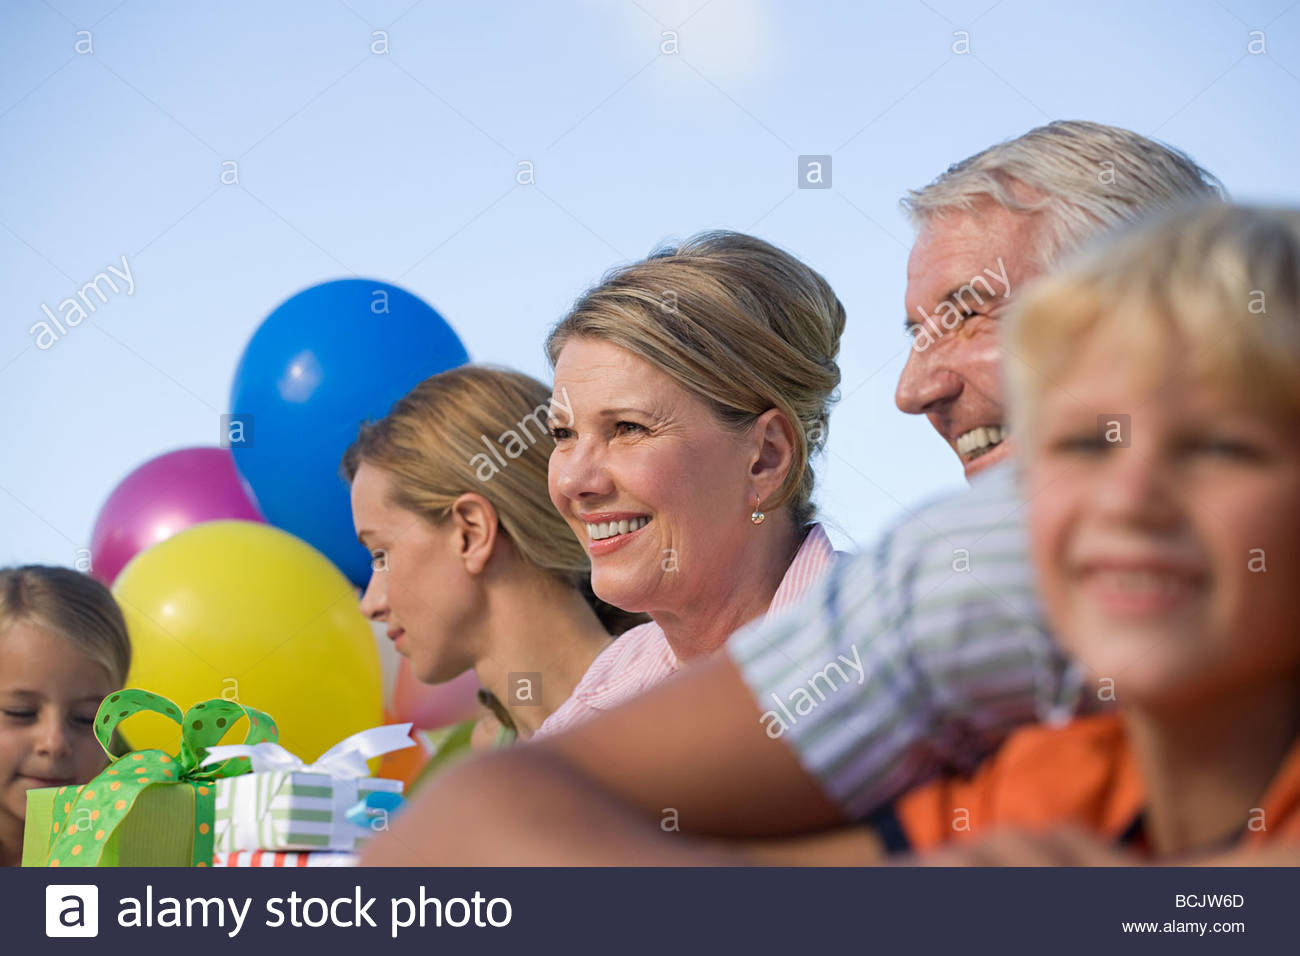 Family members at a child's birthday party - Stock Image